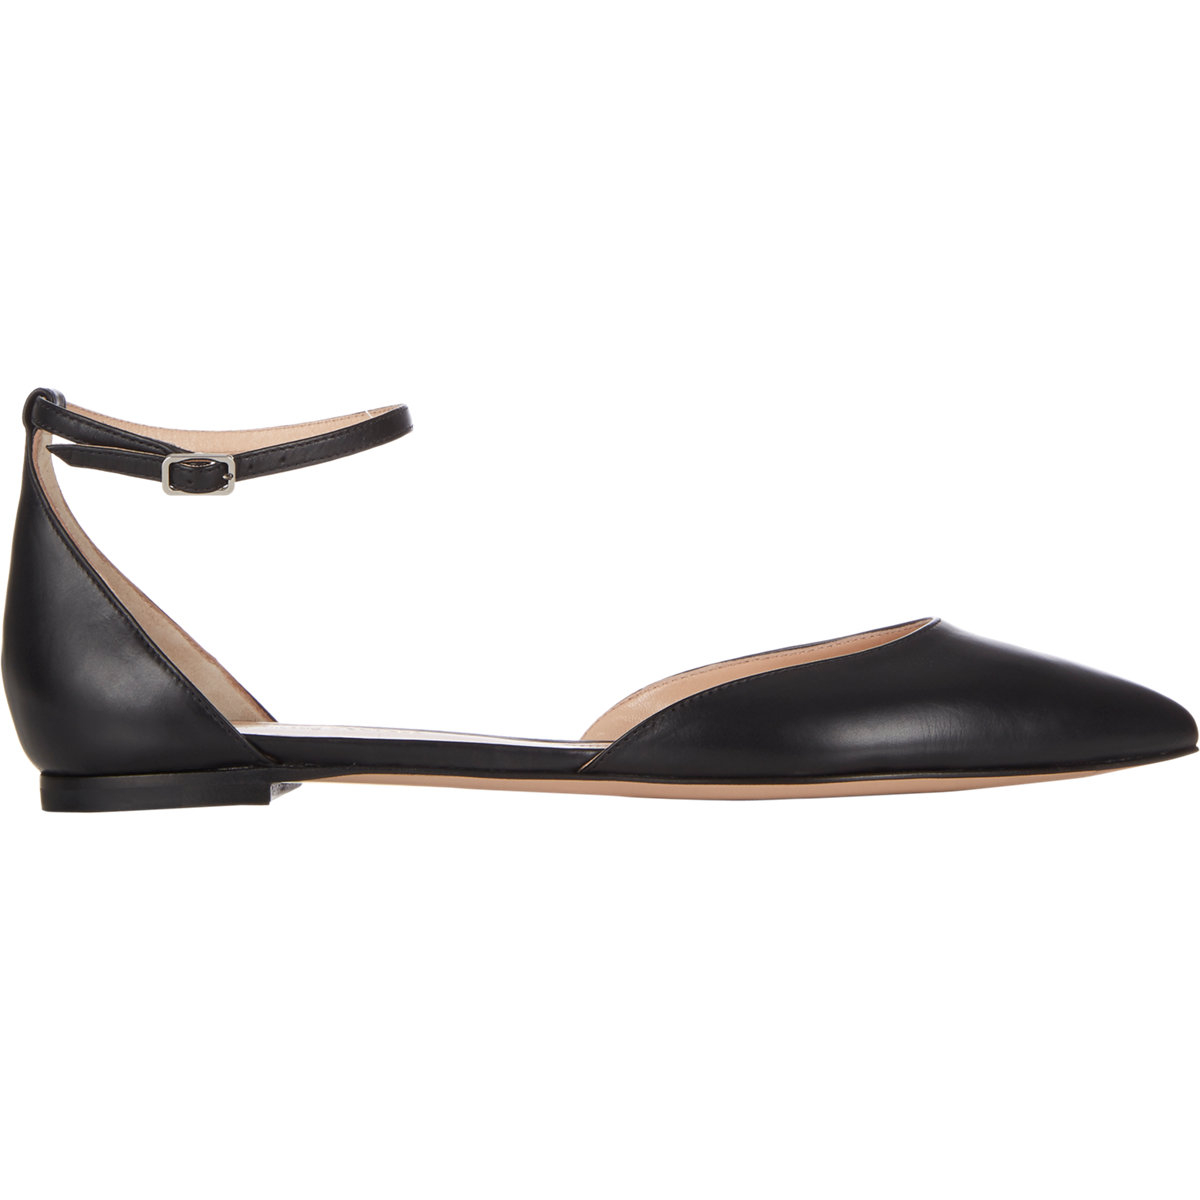 4d38142250b Lyst - Gianvito Rossi Women s Ankle-strap D orsay Flats in Black